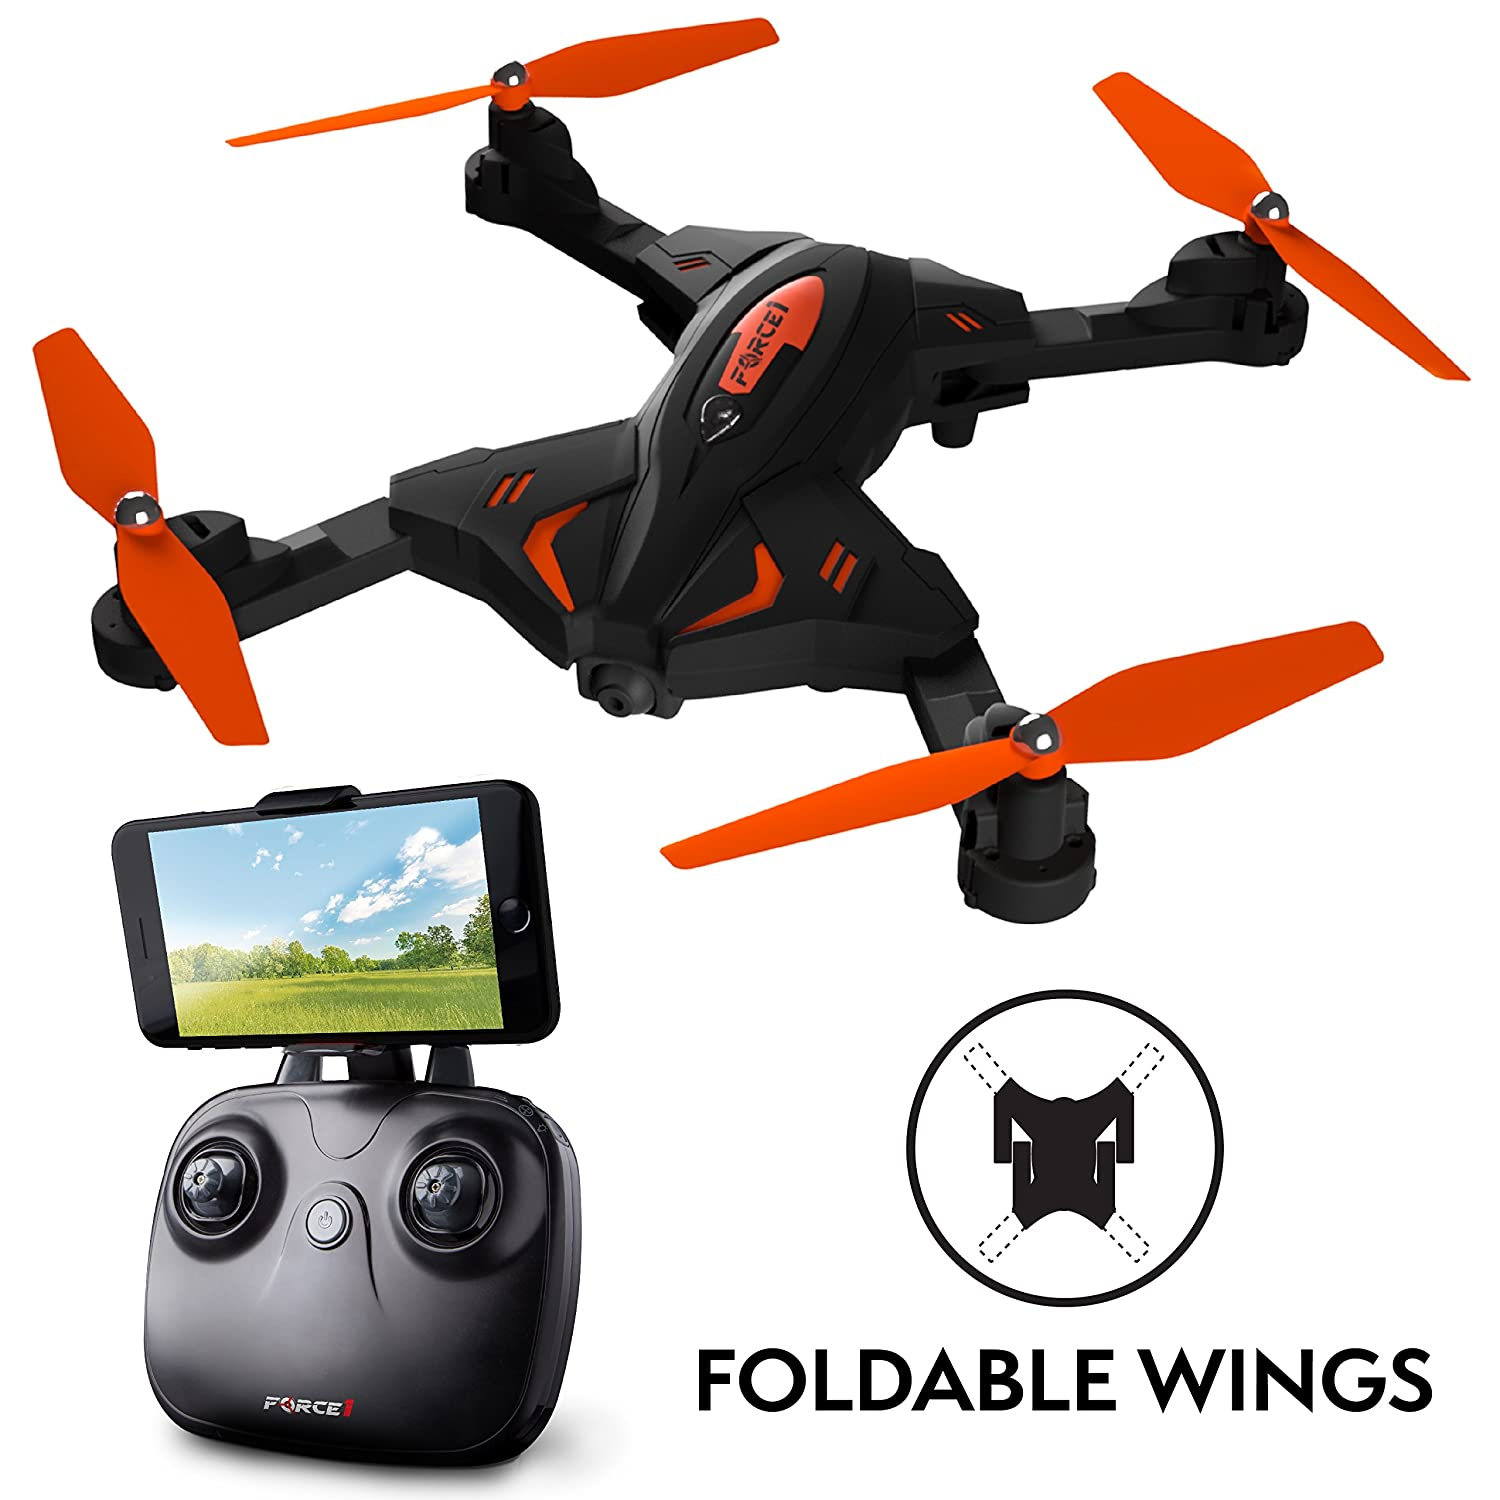 Force1 Foldable Drone with Camera Live Video